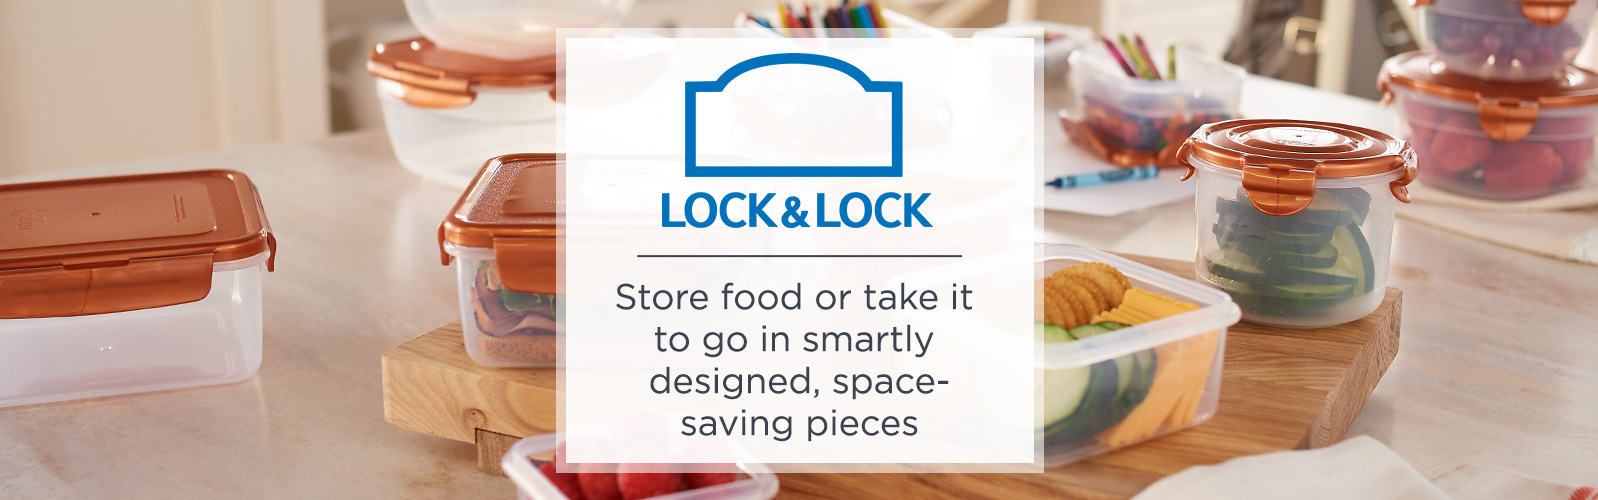 Lock & Lock - Store food or take it to go in smartly designed, space-saving pieces